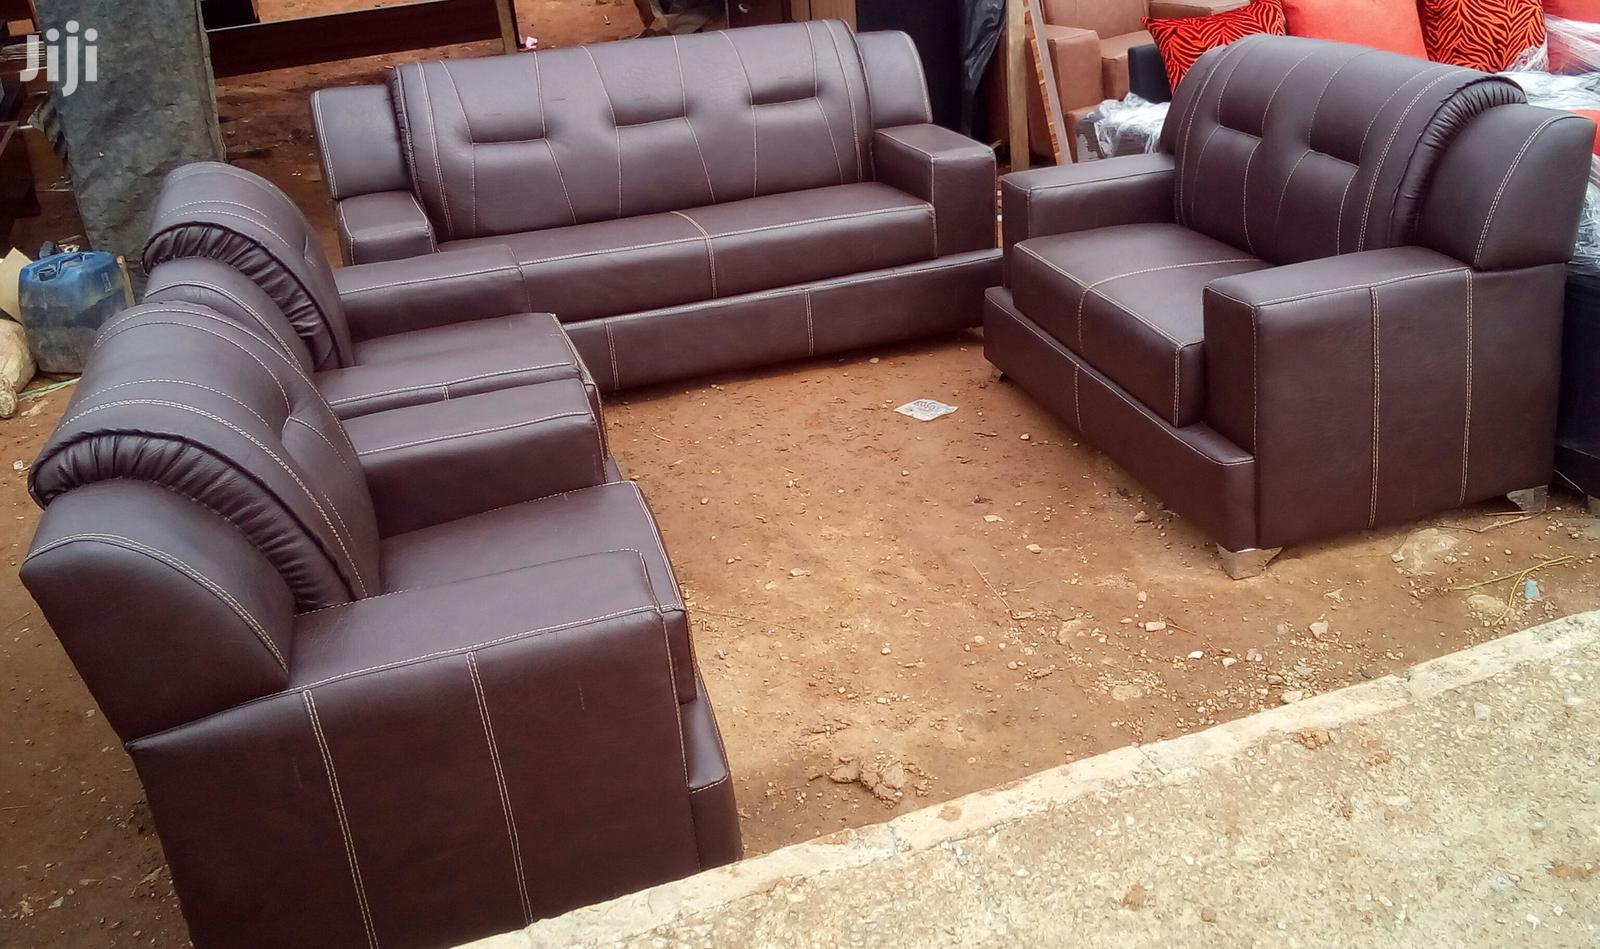 Picture of: Archive Set Of 7 Seaters Leather Sofa Chairs Couches Brown In Lagos State Furniture Prefix E Jiji Ng